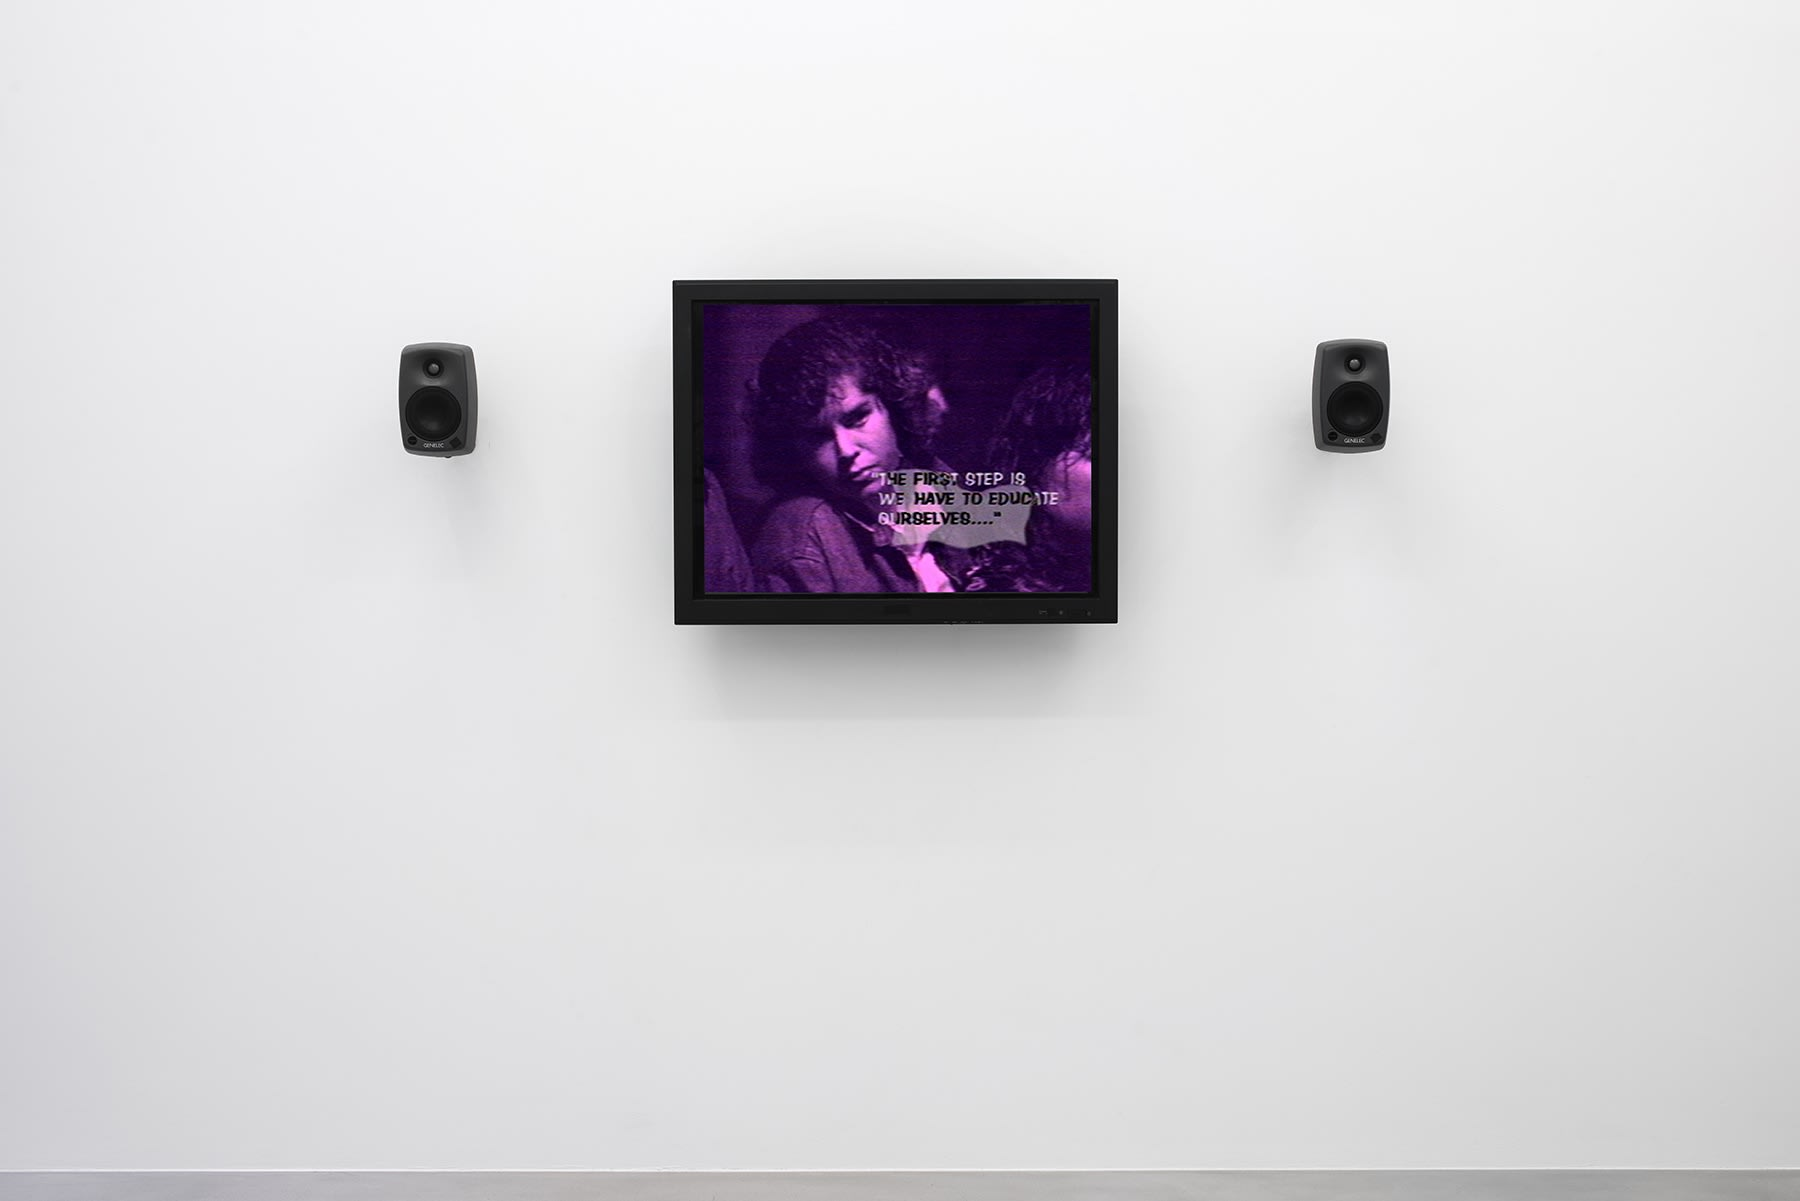 """A purple monitor with 2 speakers displays a woman with text reading """"The first step is we have to educate ourselves."""""""